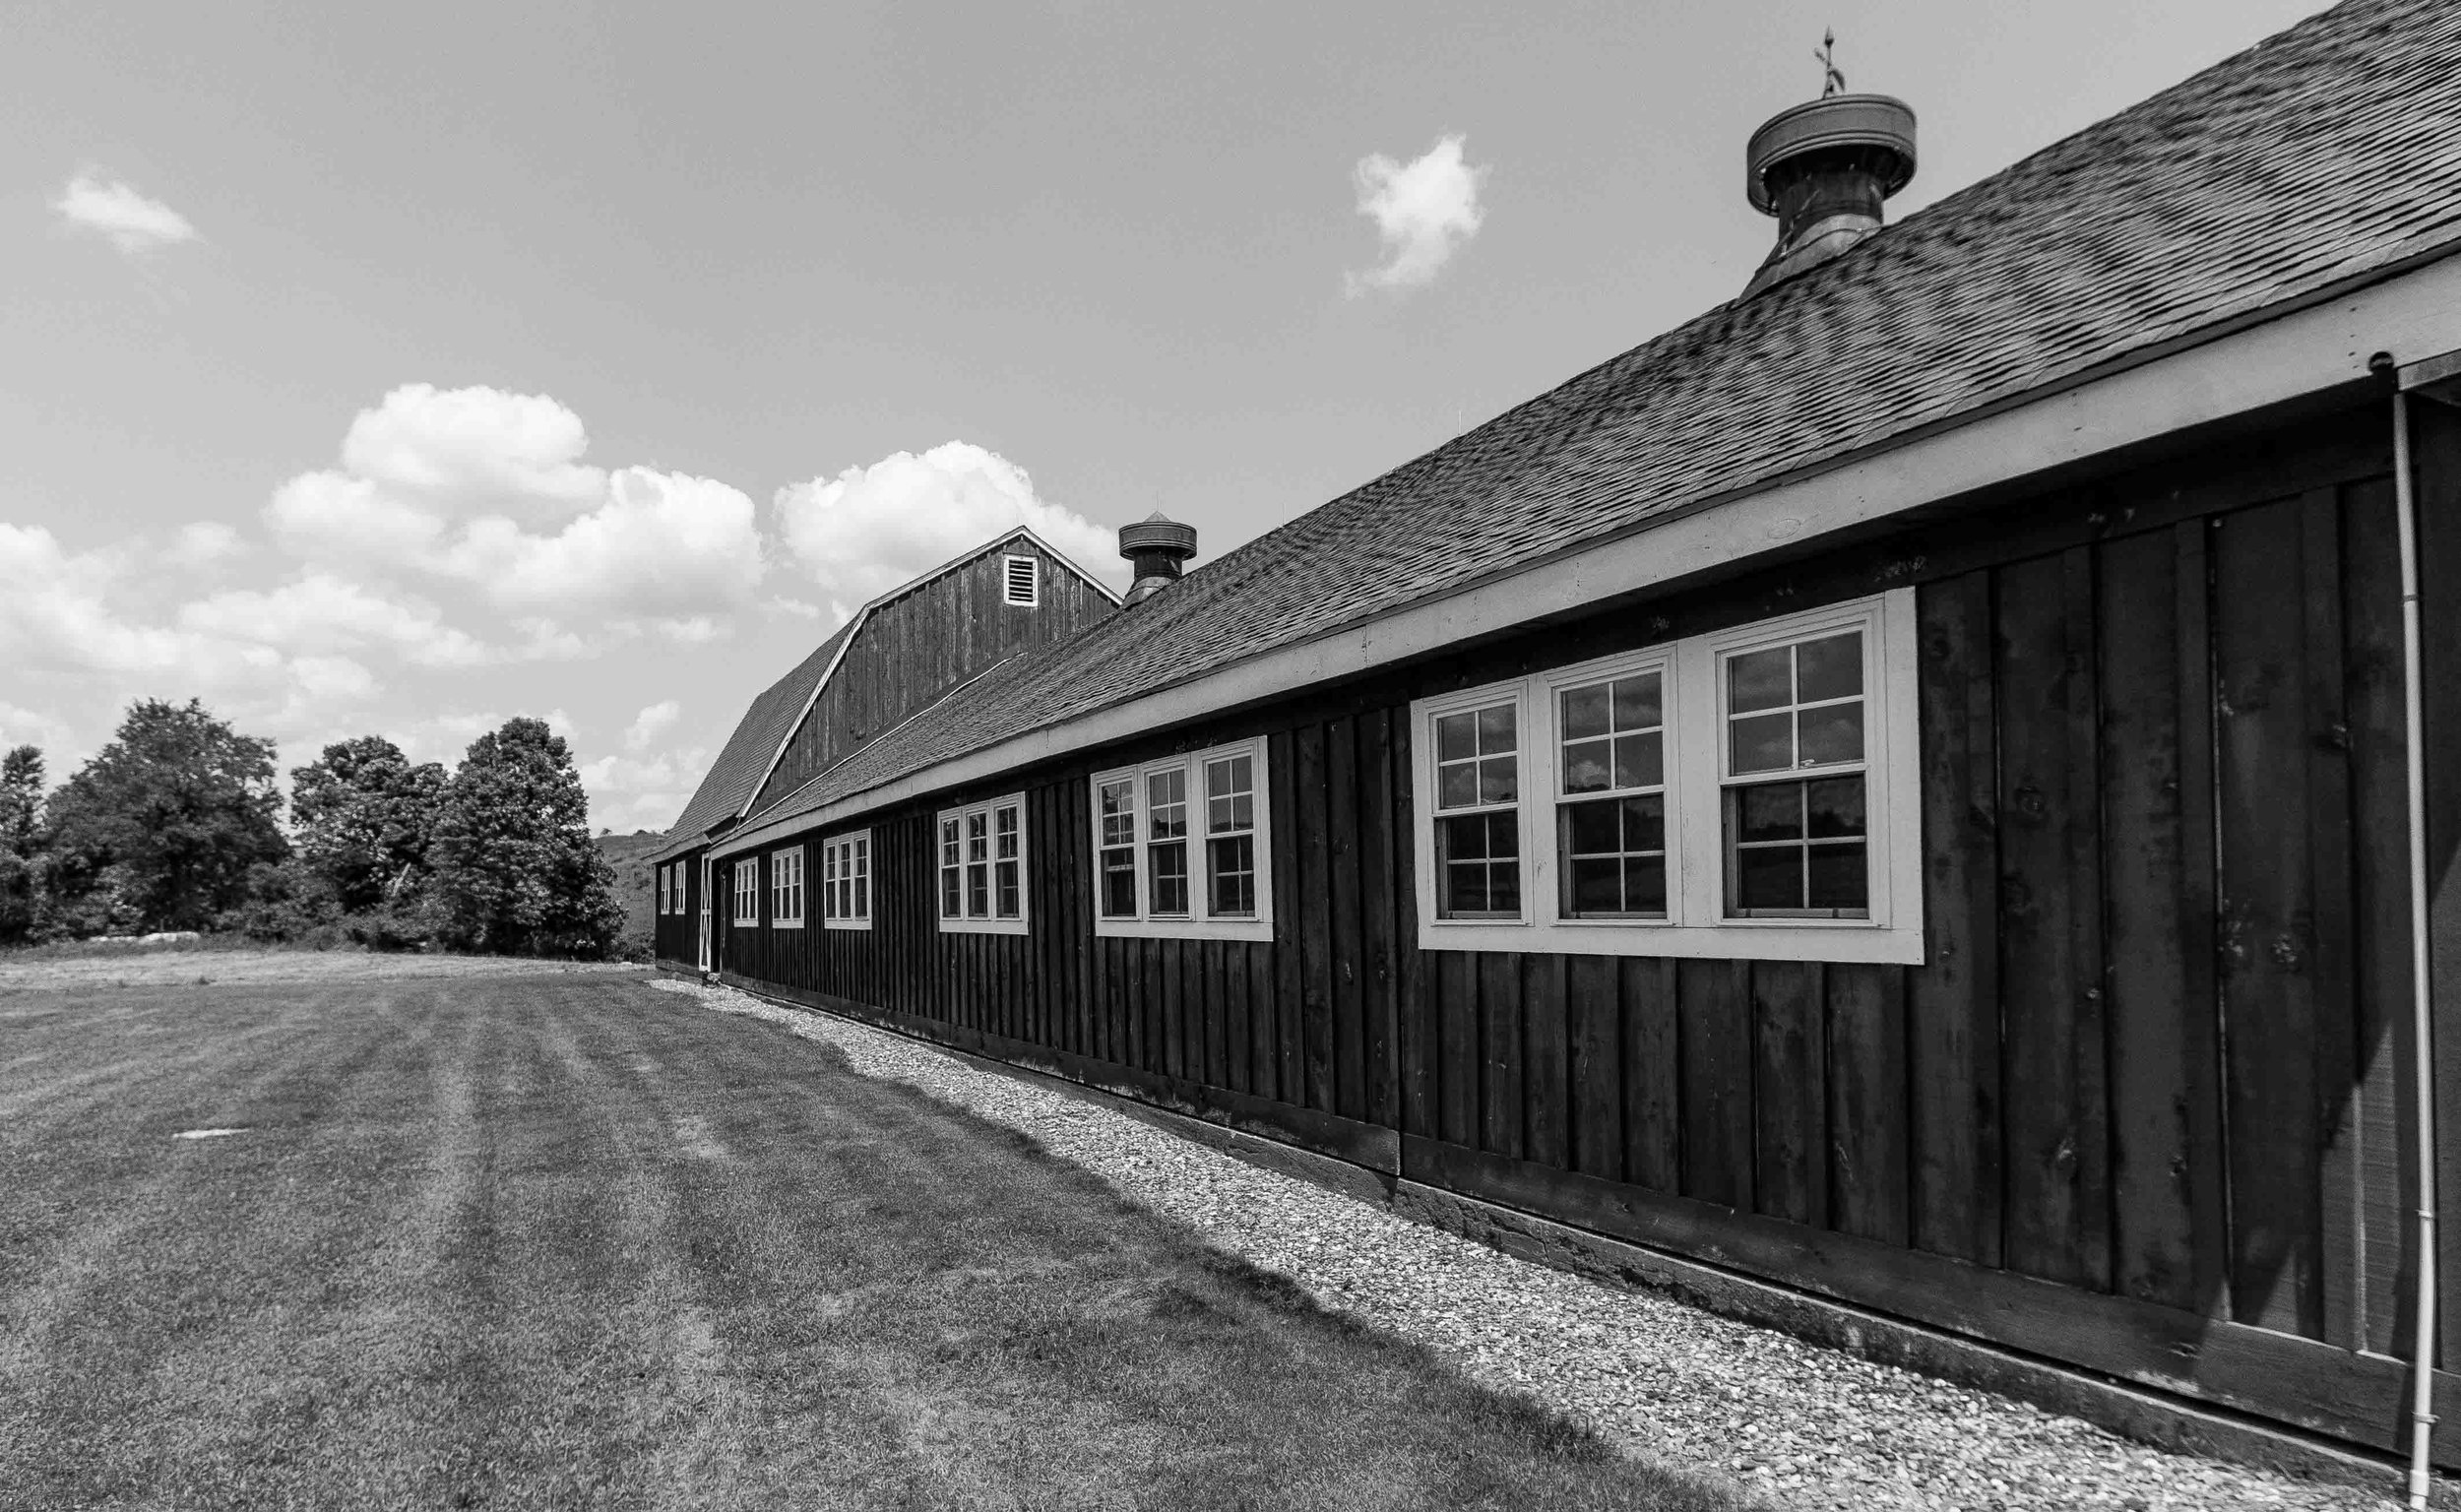 LEARN MORE ABOUT LOCKWOOD FARM